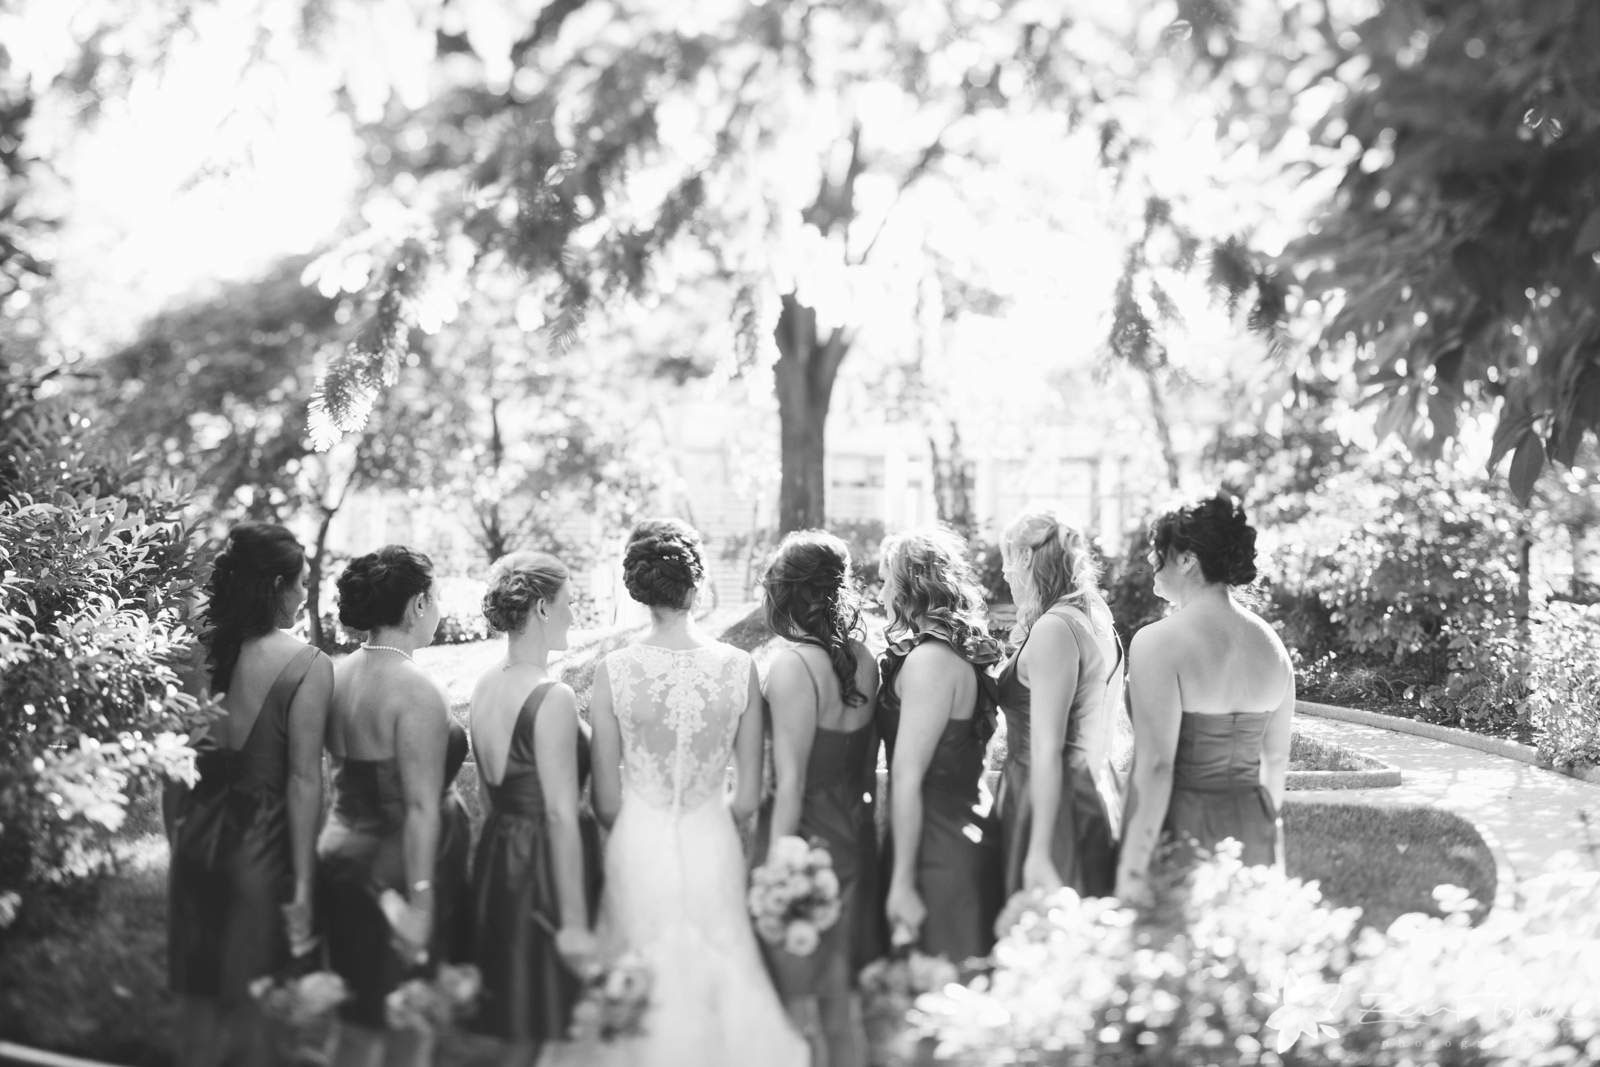 Black and white bride and bridesmaids portrait showing back of dresses and hair styles.